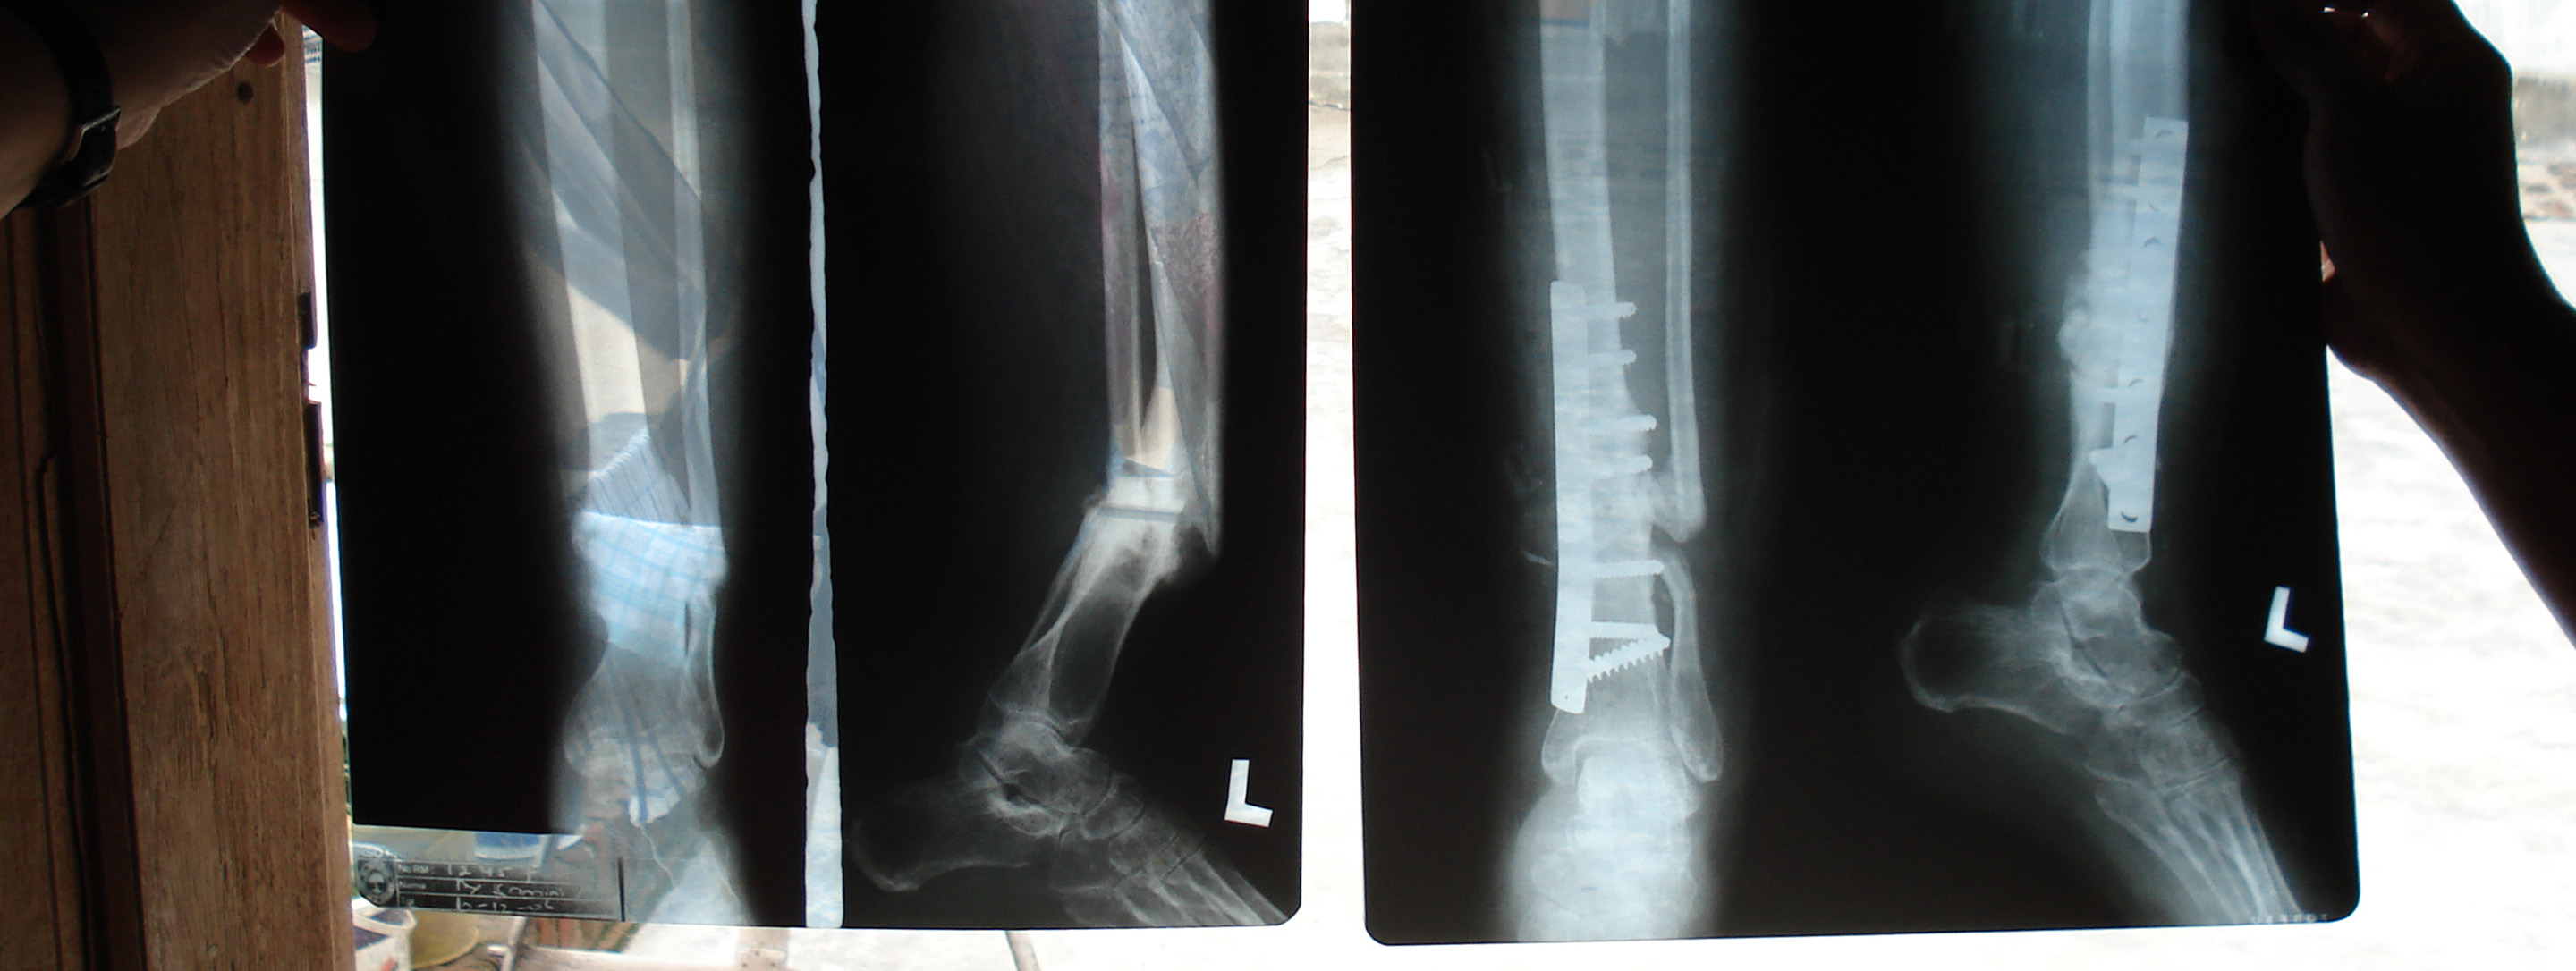 x-rays of a limb fractured in an earthquake in indonesia